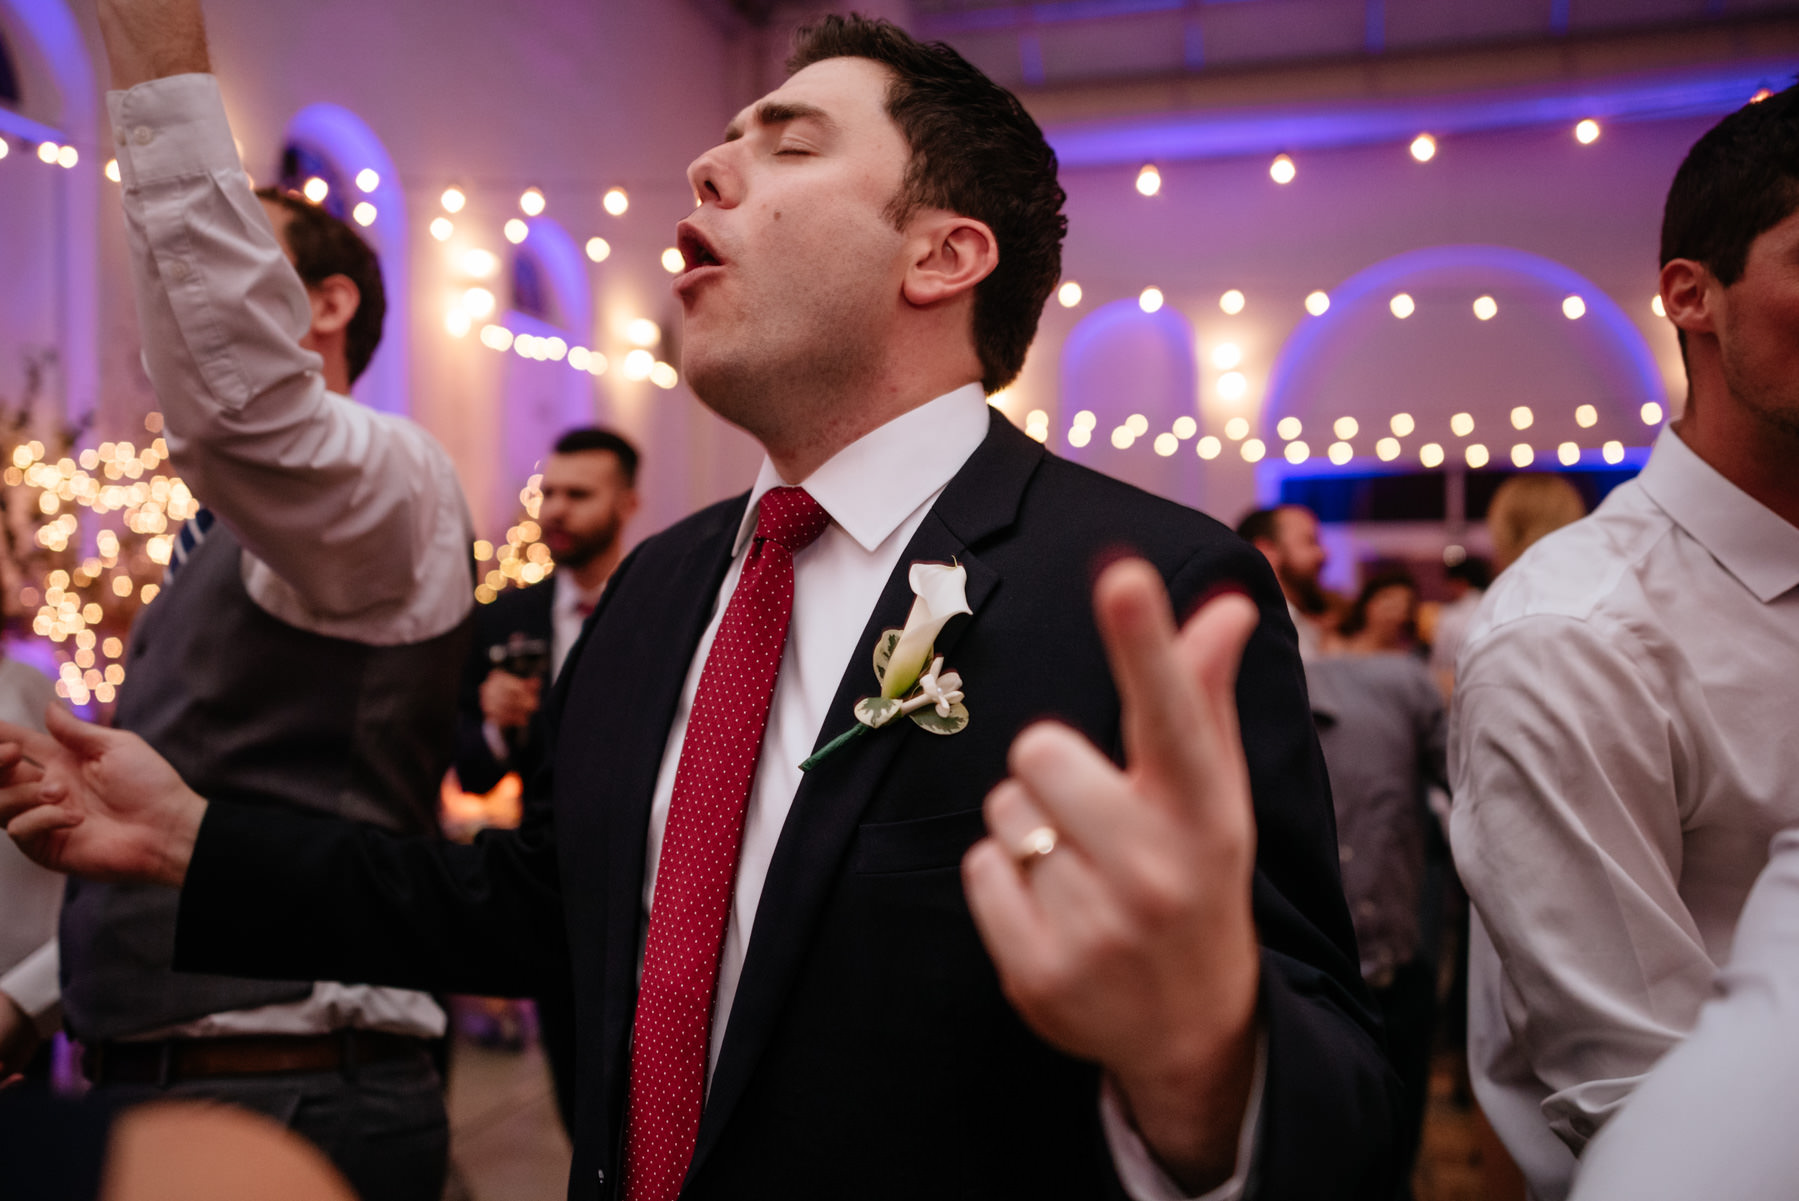 groom singing during wedding reception